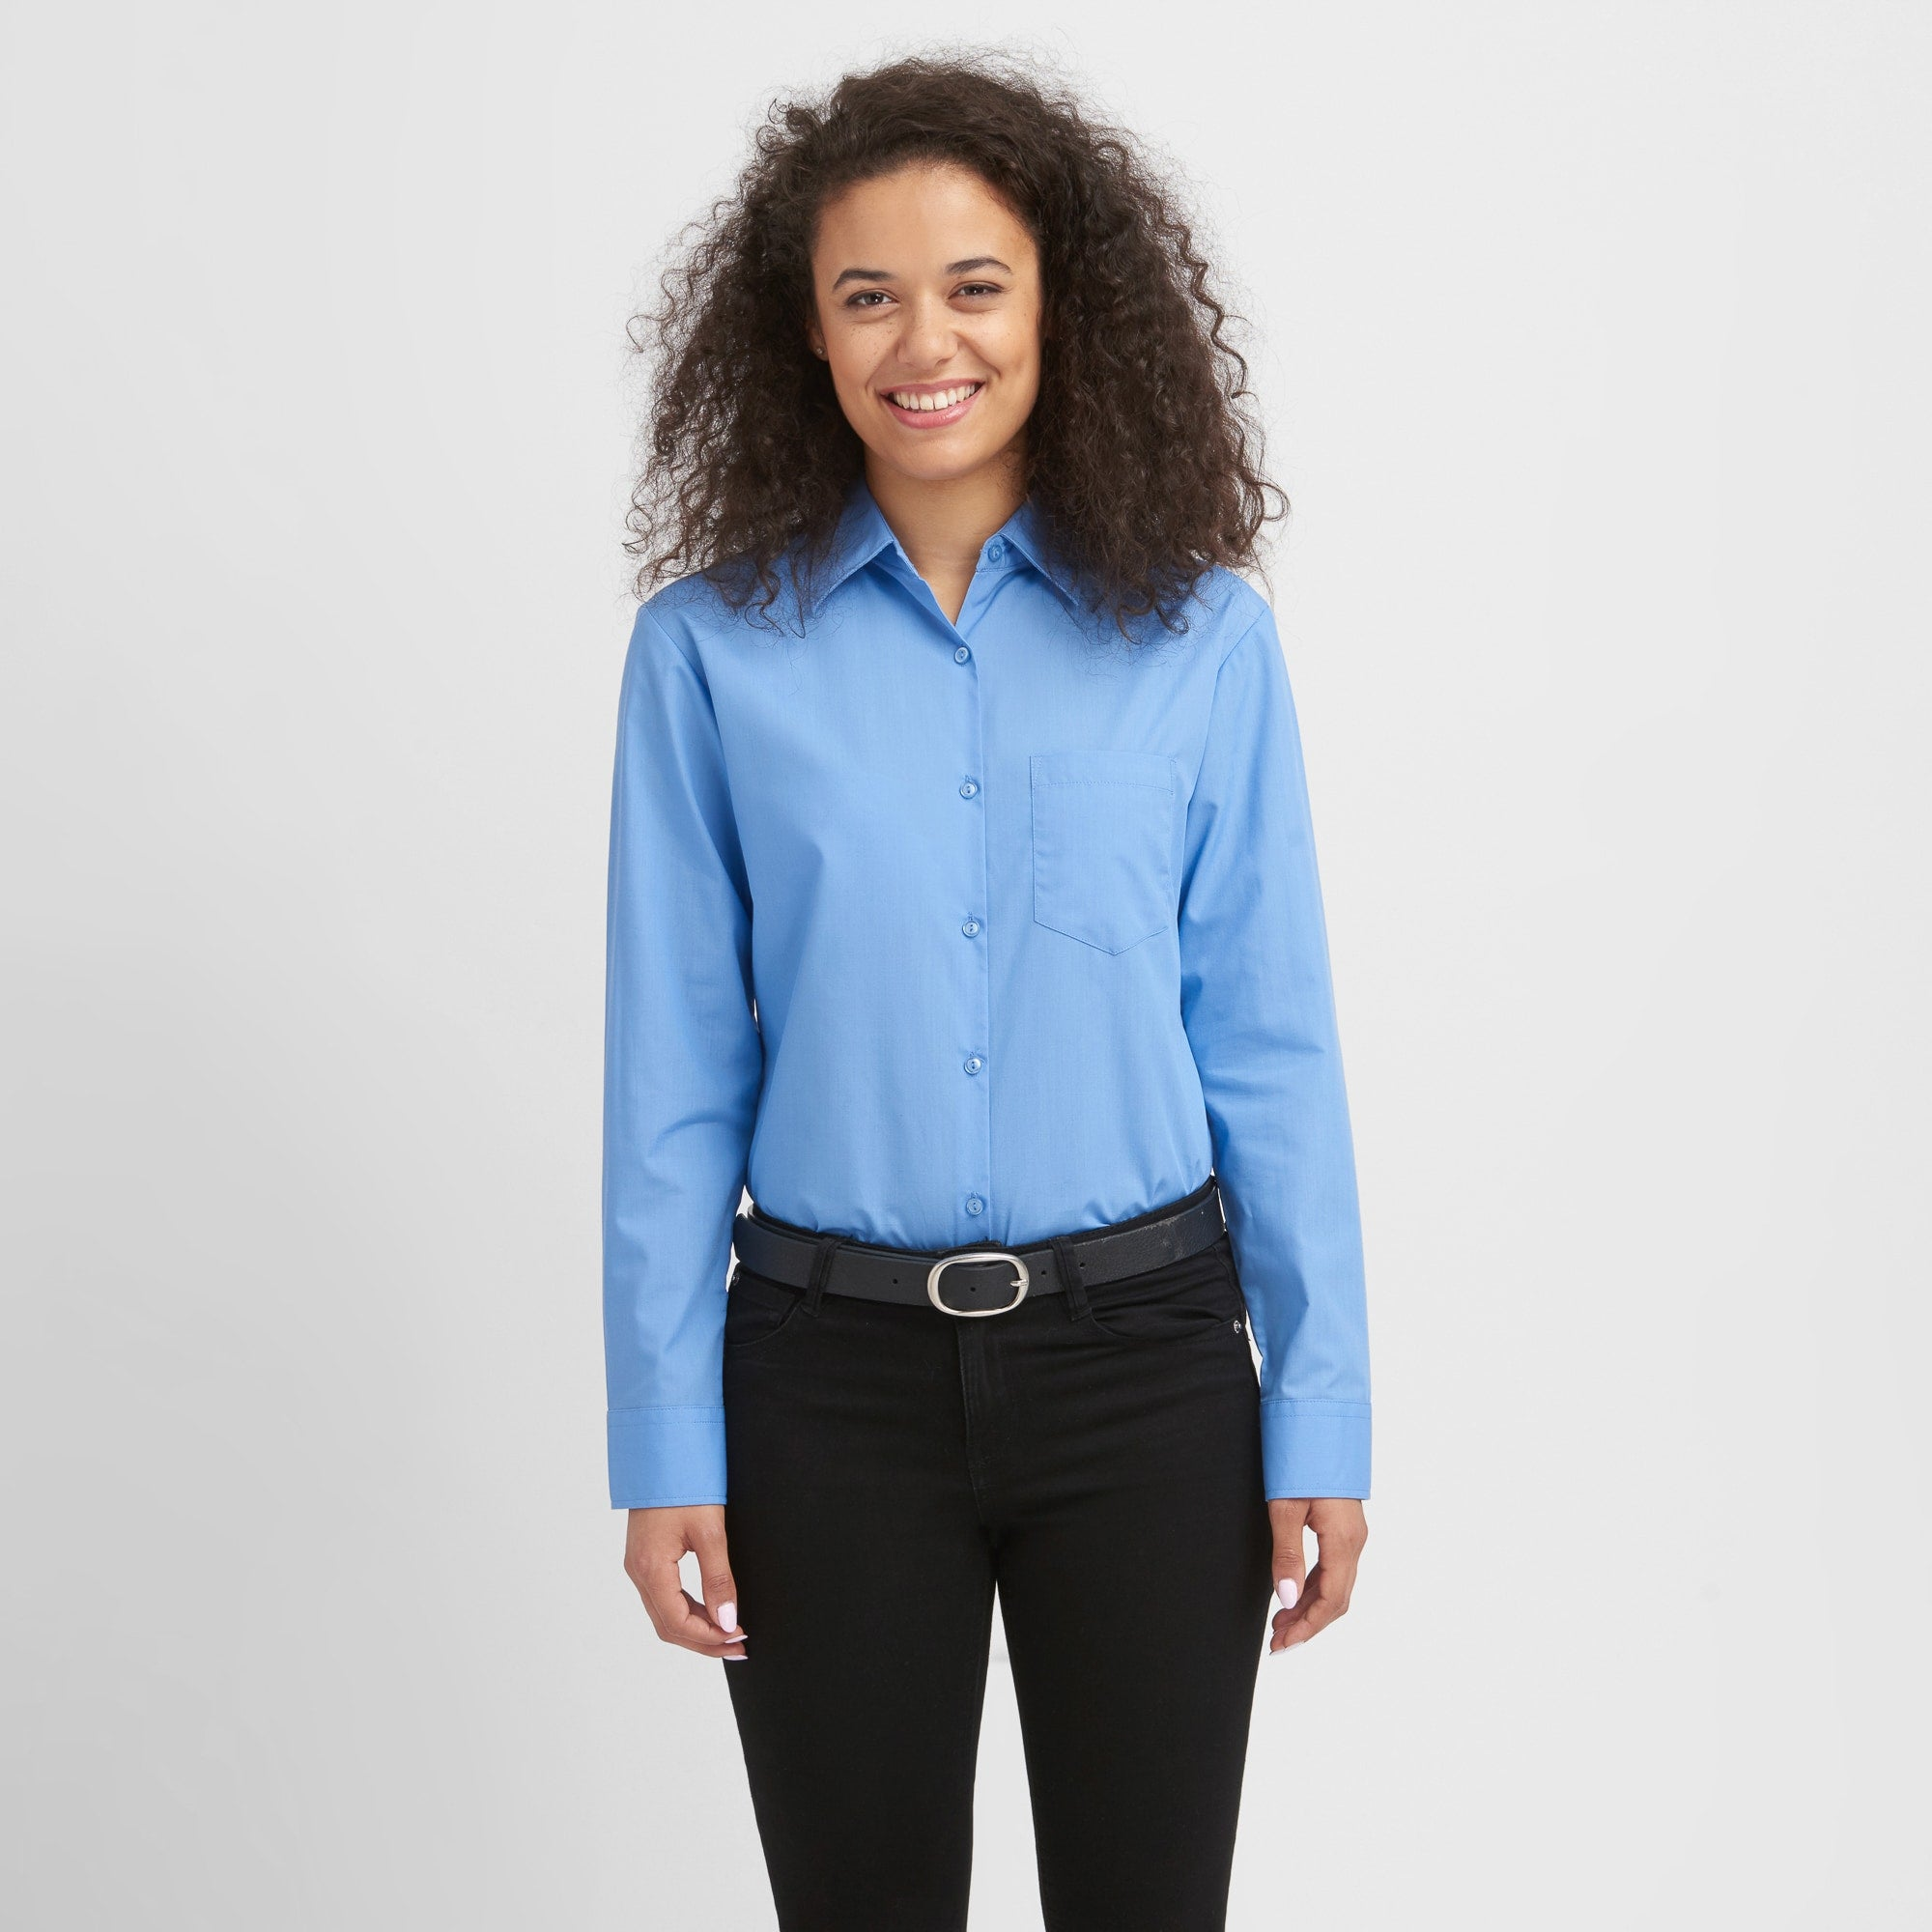 Russell Z934F Basic Easy-Care Bluse langarm bei Textil One besticken